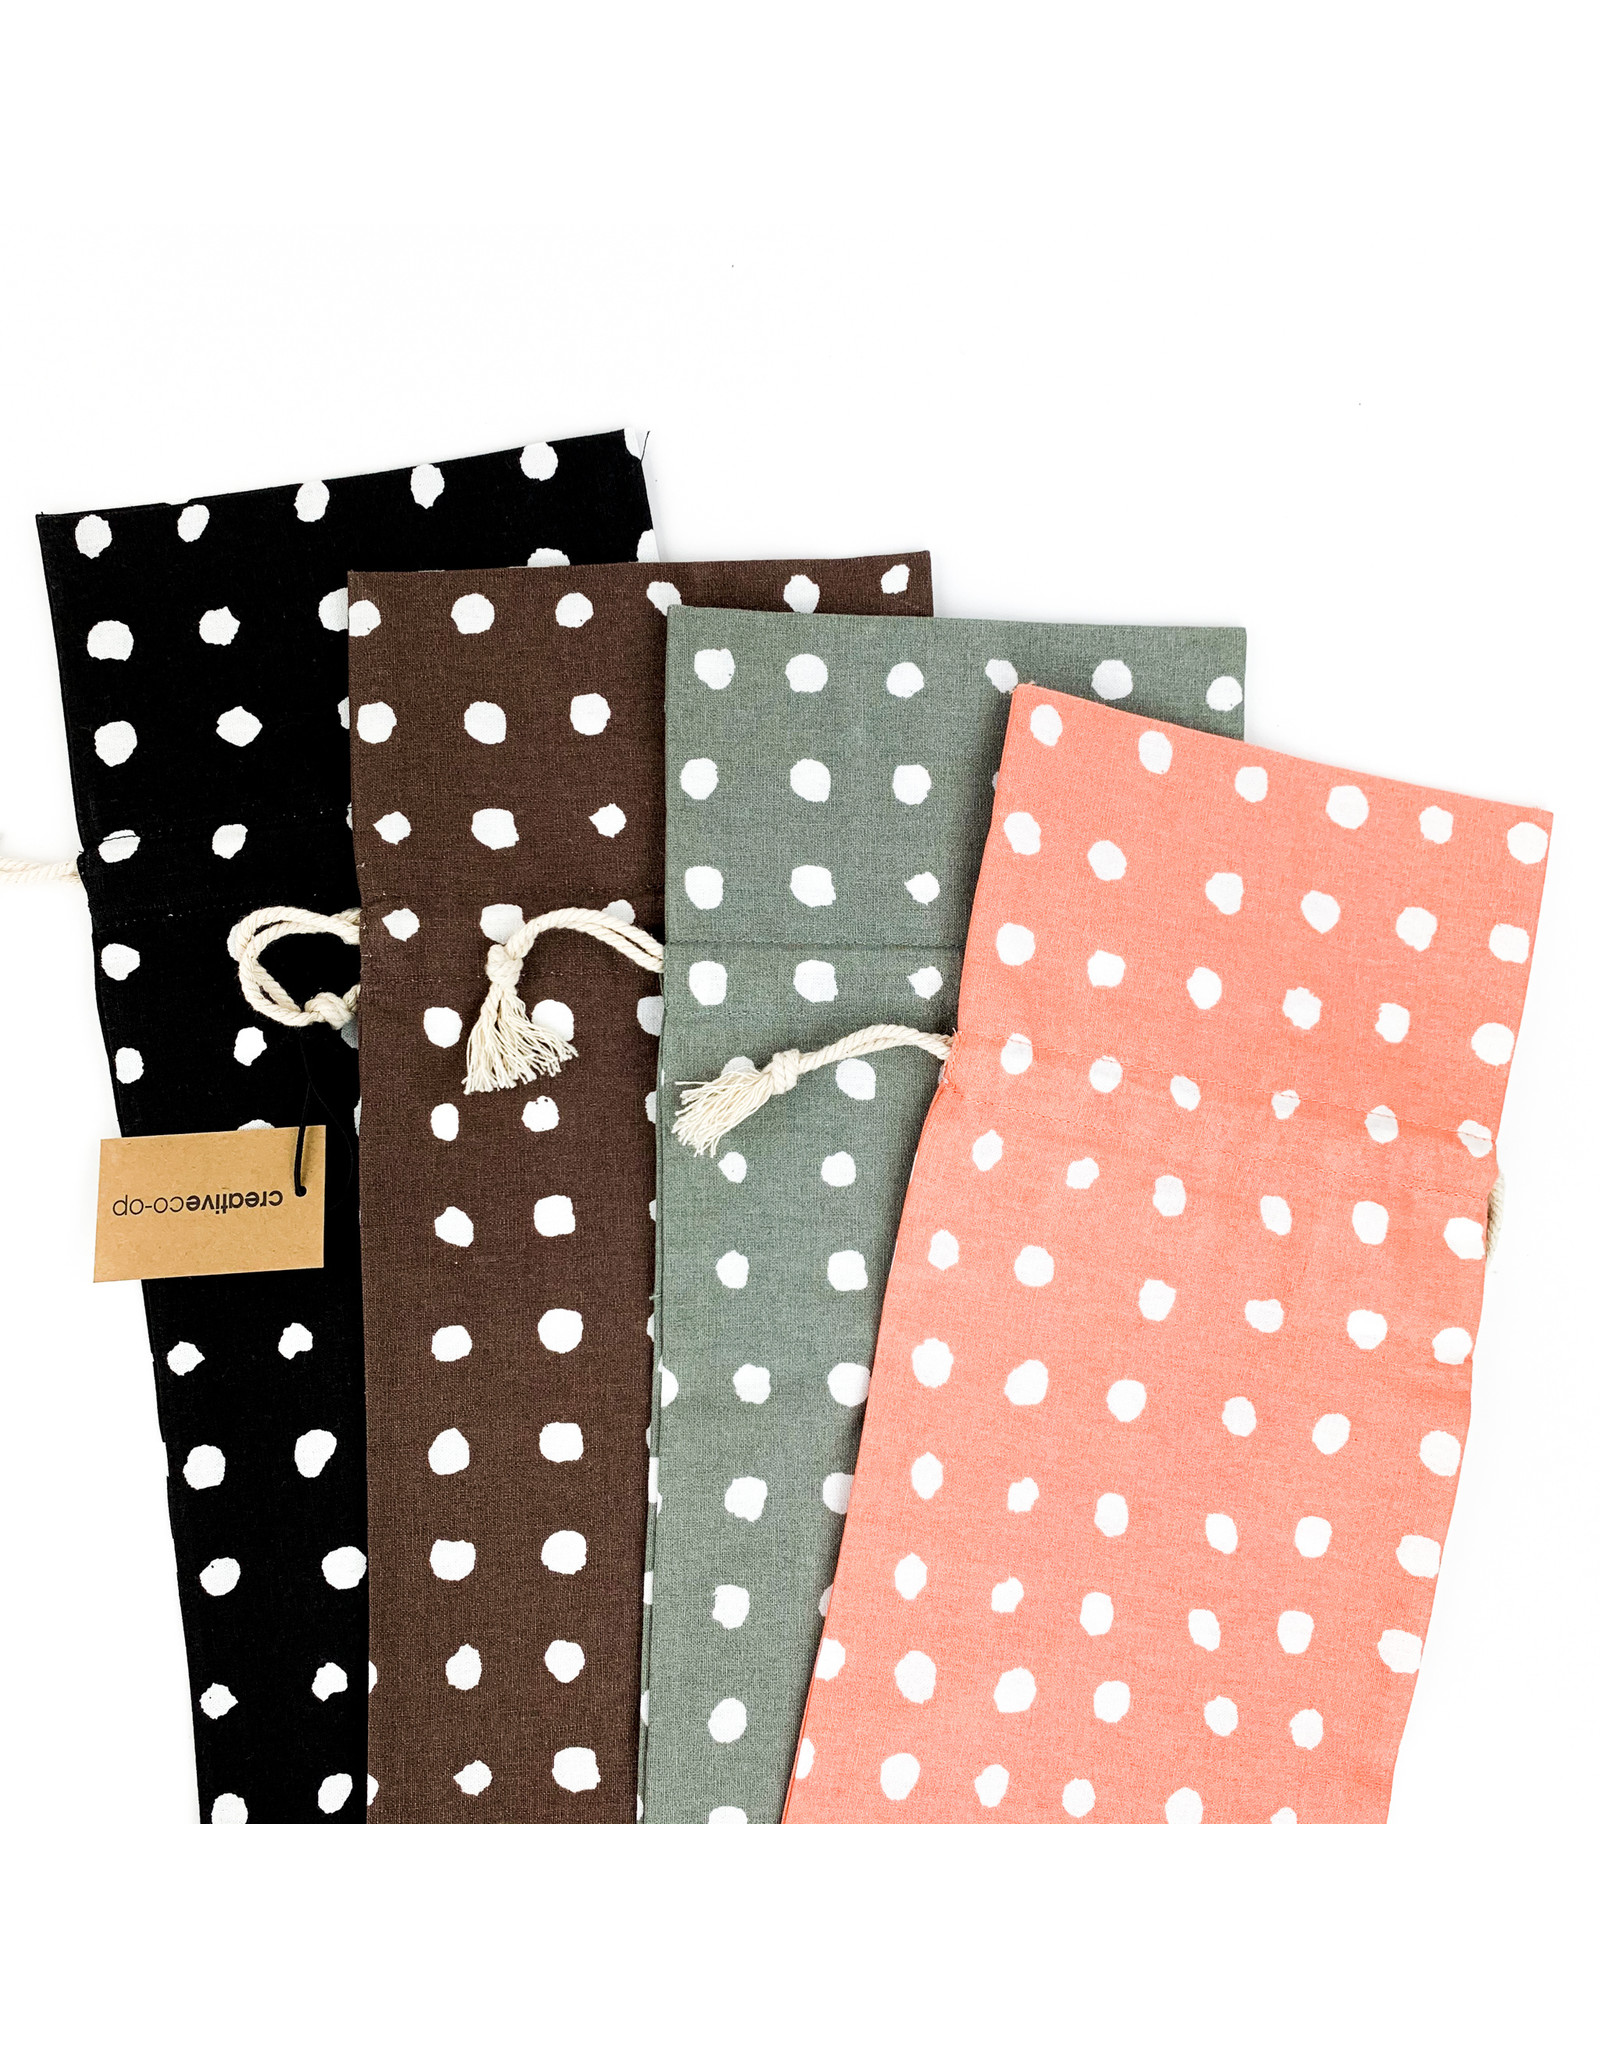 Creative Co-Op Woven Cotton Polka Dot Bag